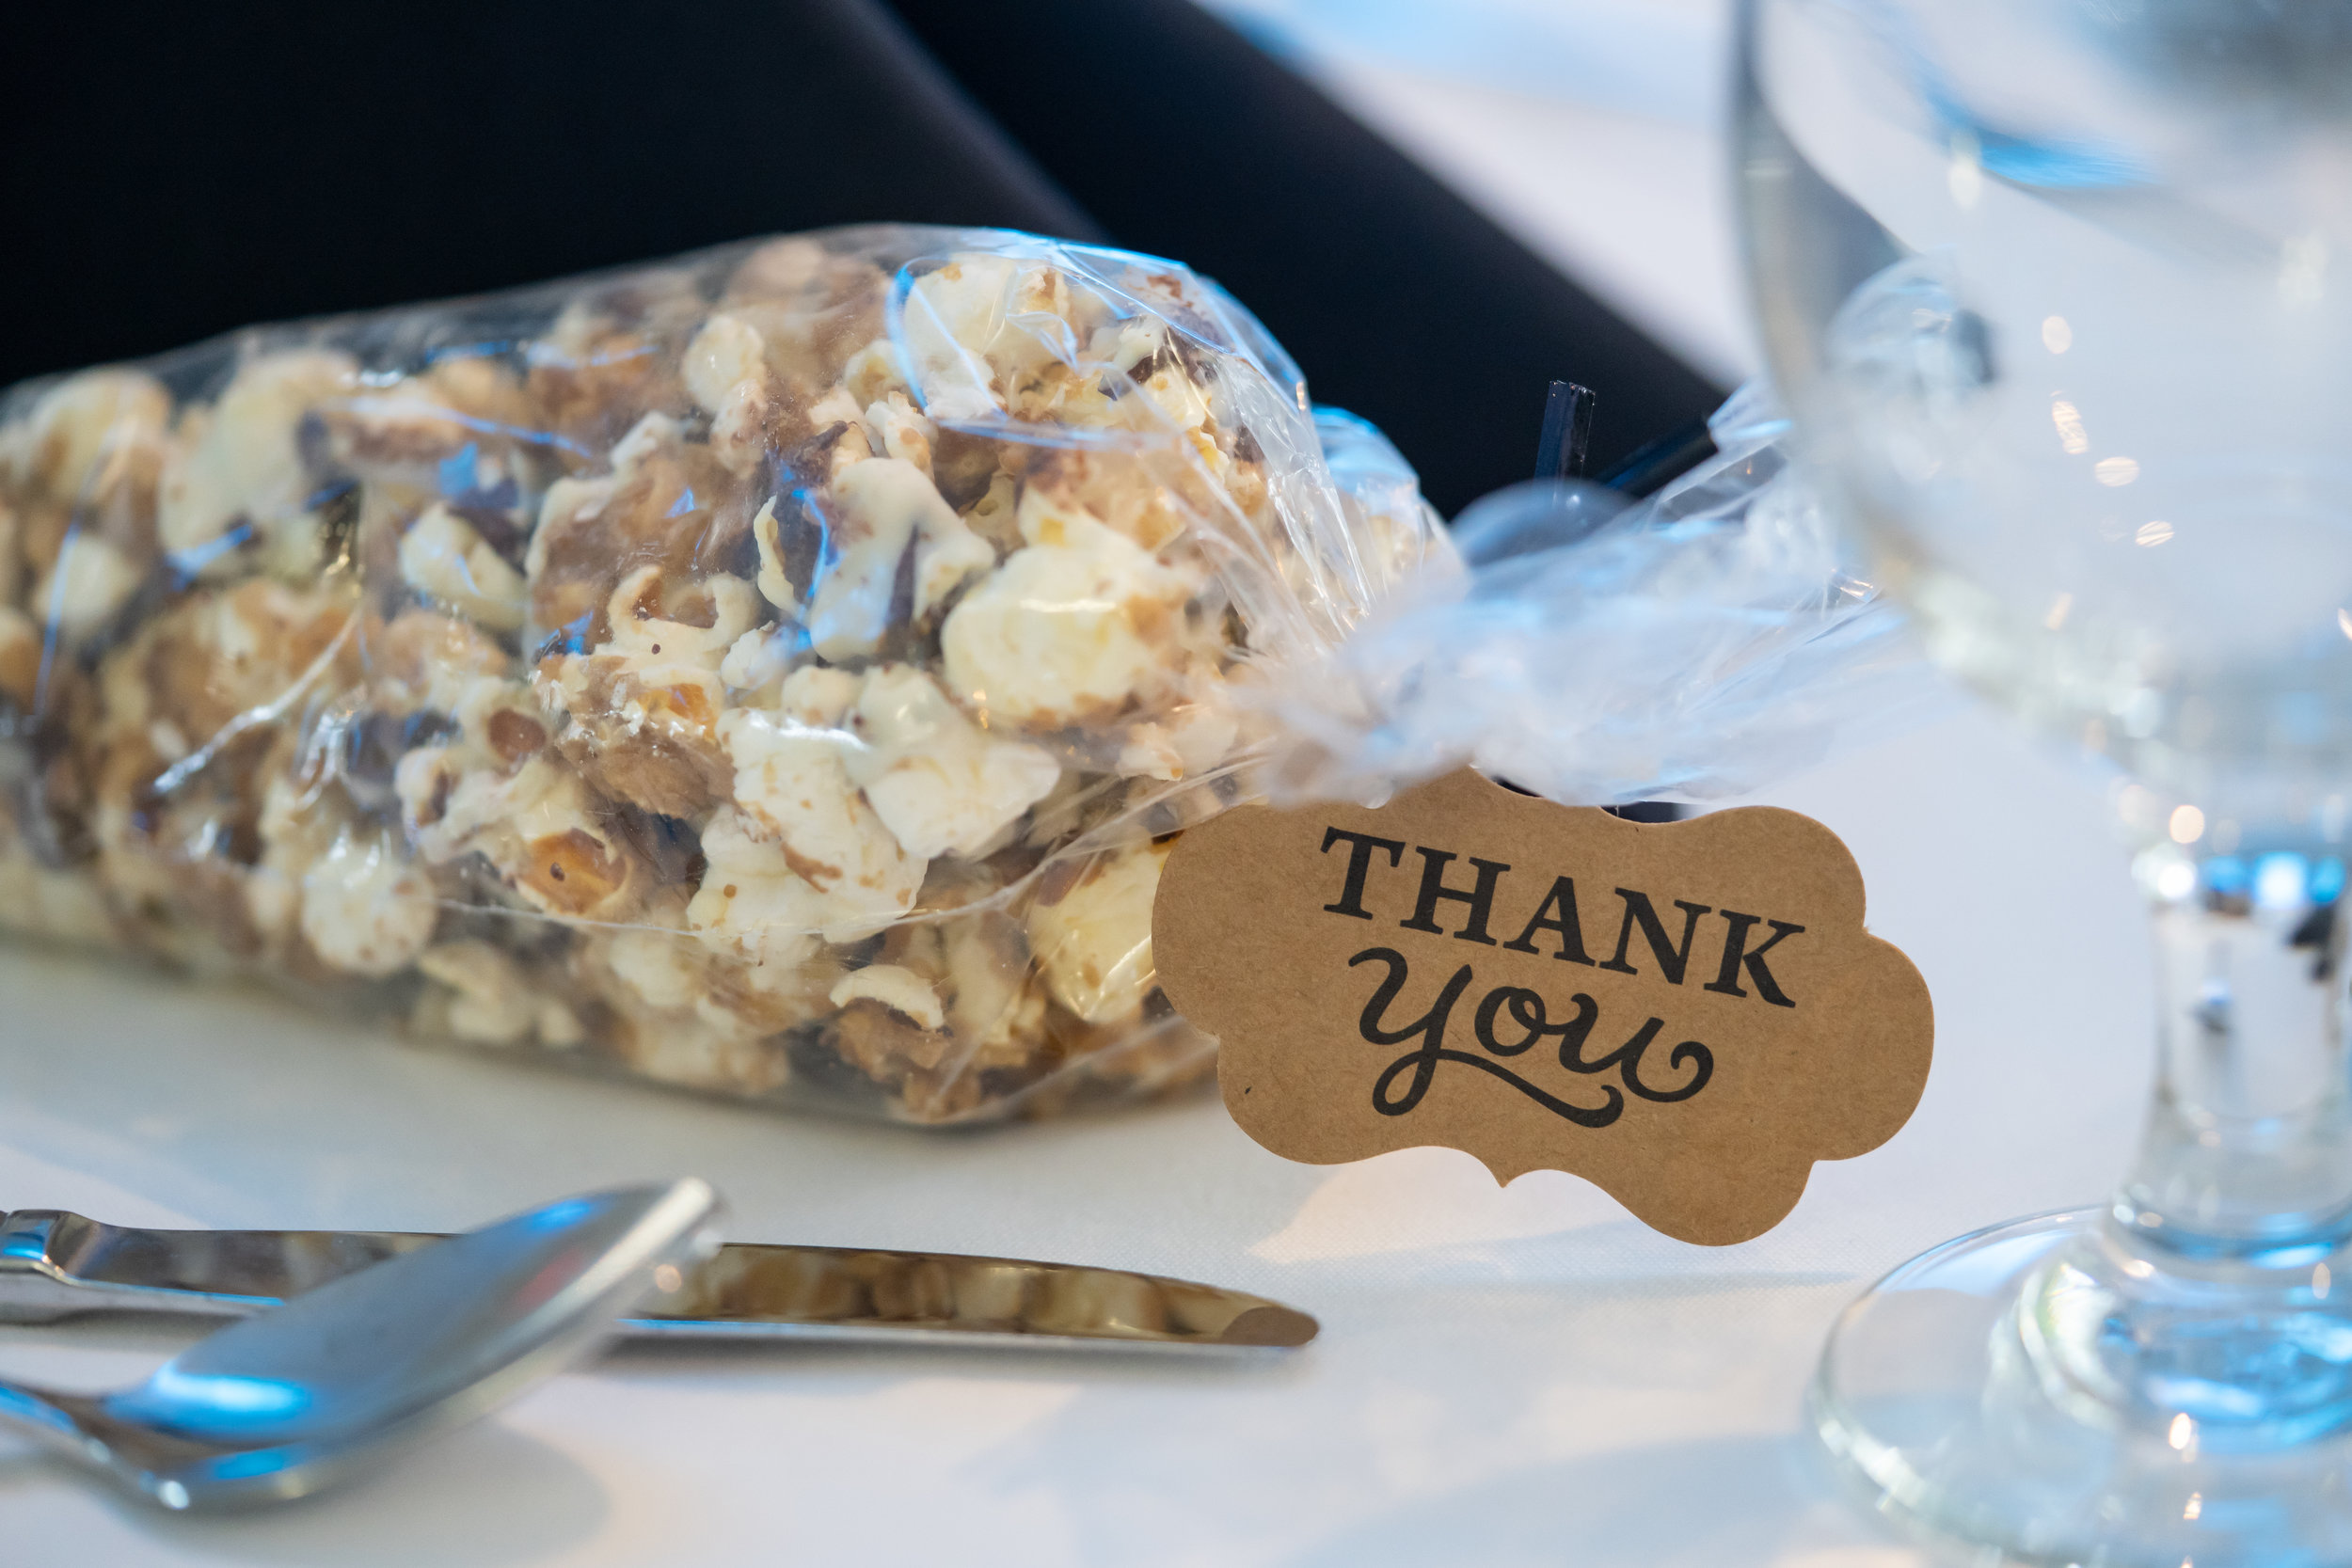 A caramel and chocolate popcorn mix (yum!) was set at each place setting as a thank you favor, and late night snack, for guests.